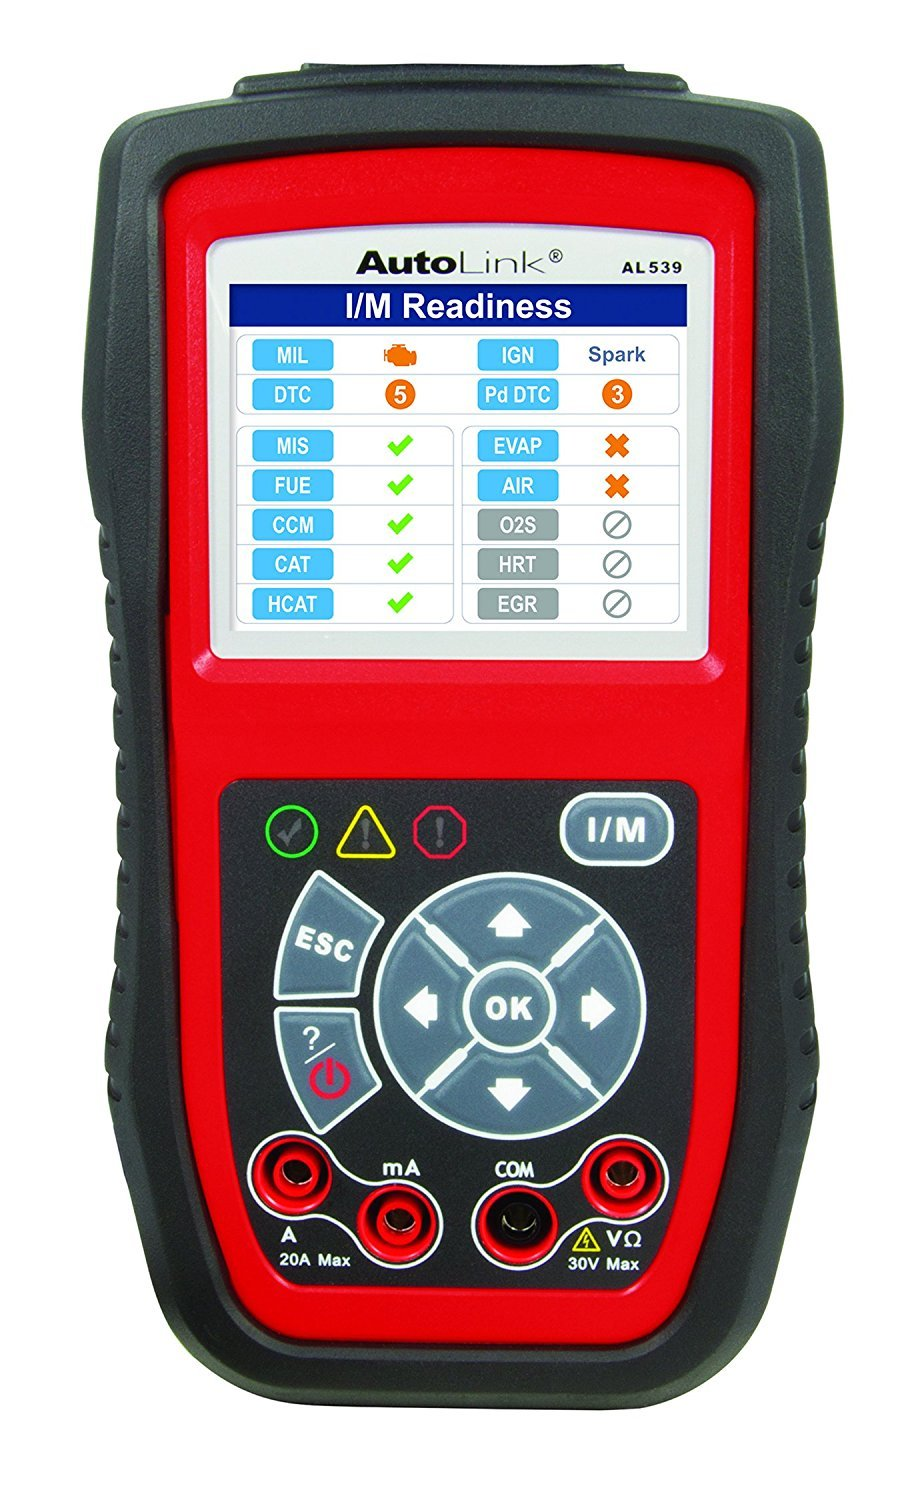 Autel Autolink AL539 OBDII CAN Electrical Test Tool Code Reader